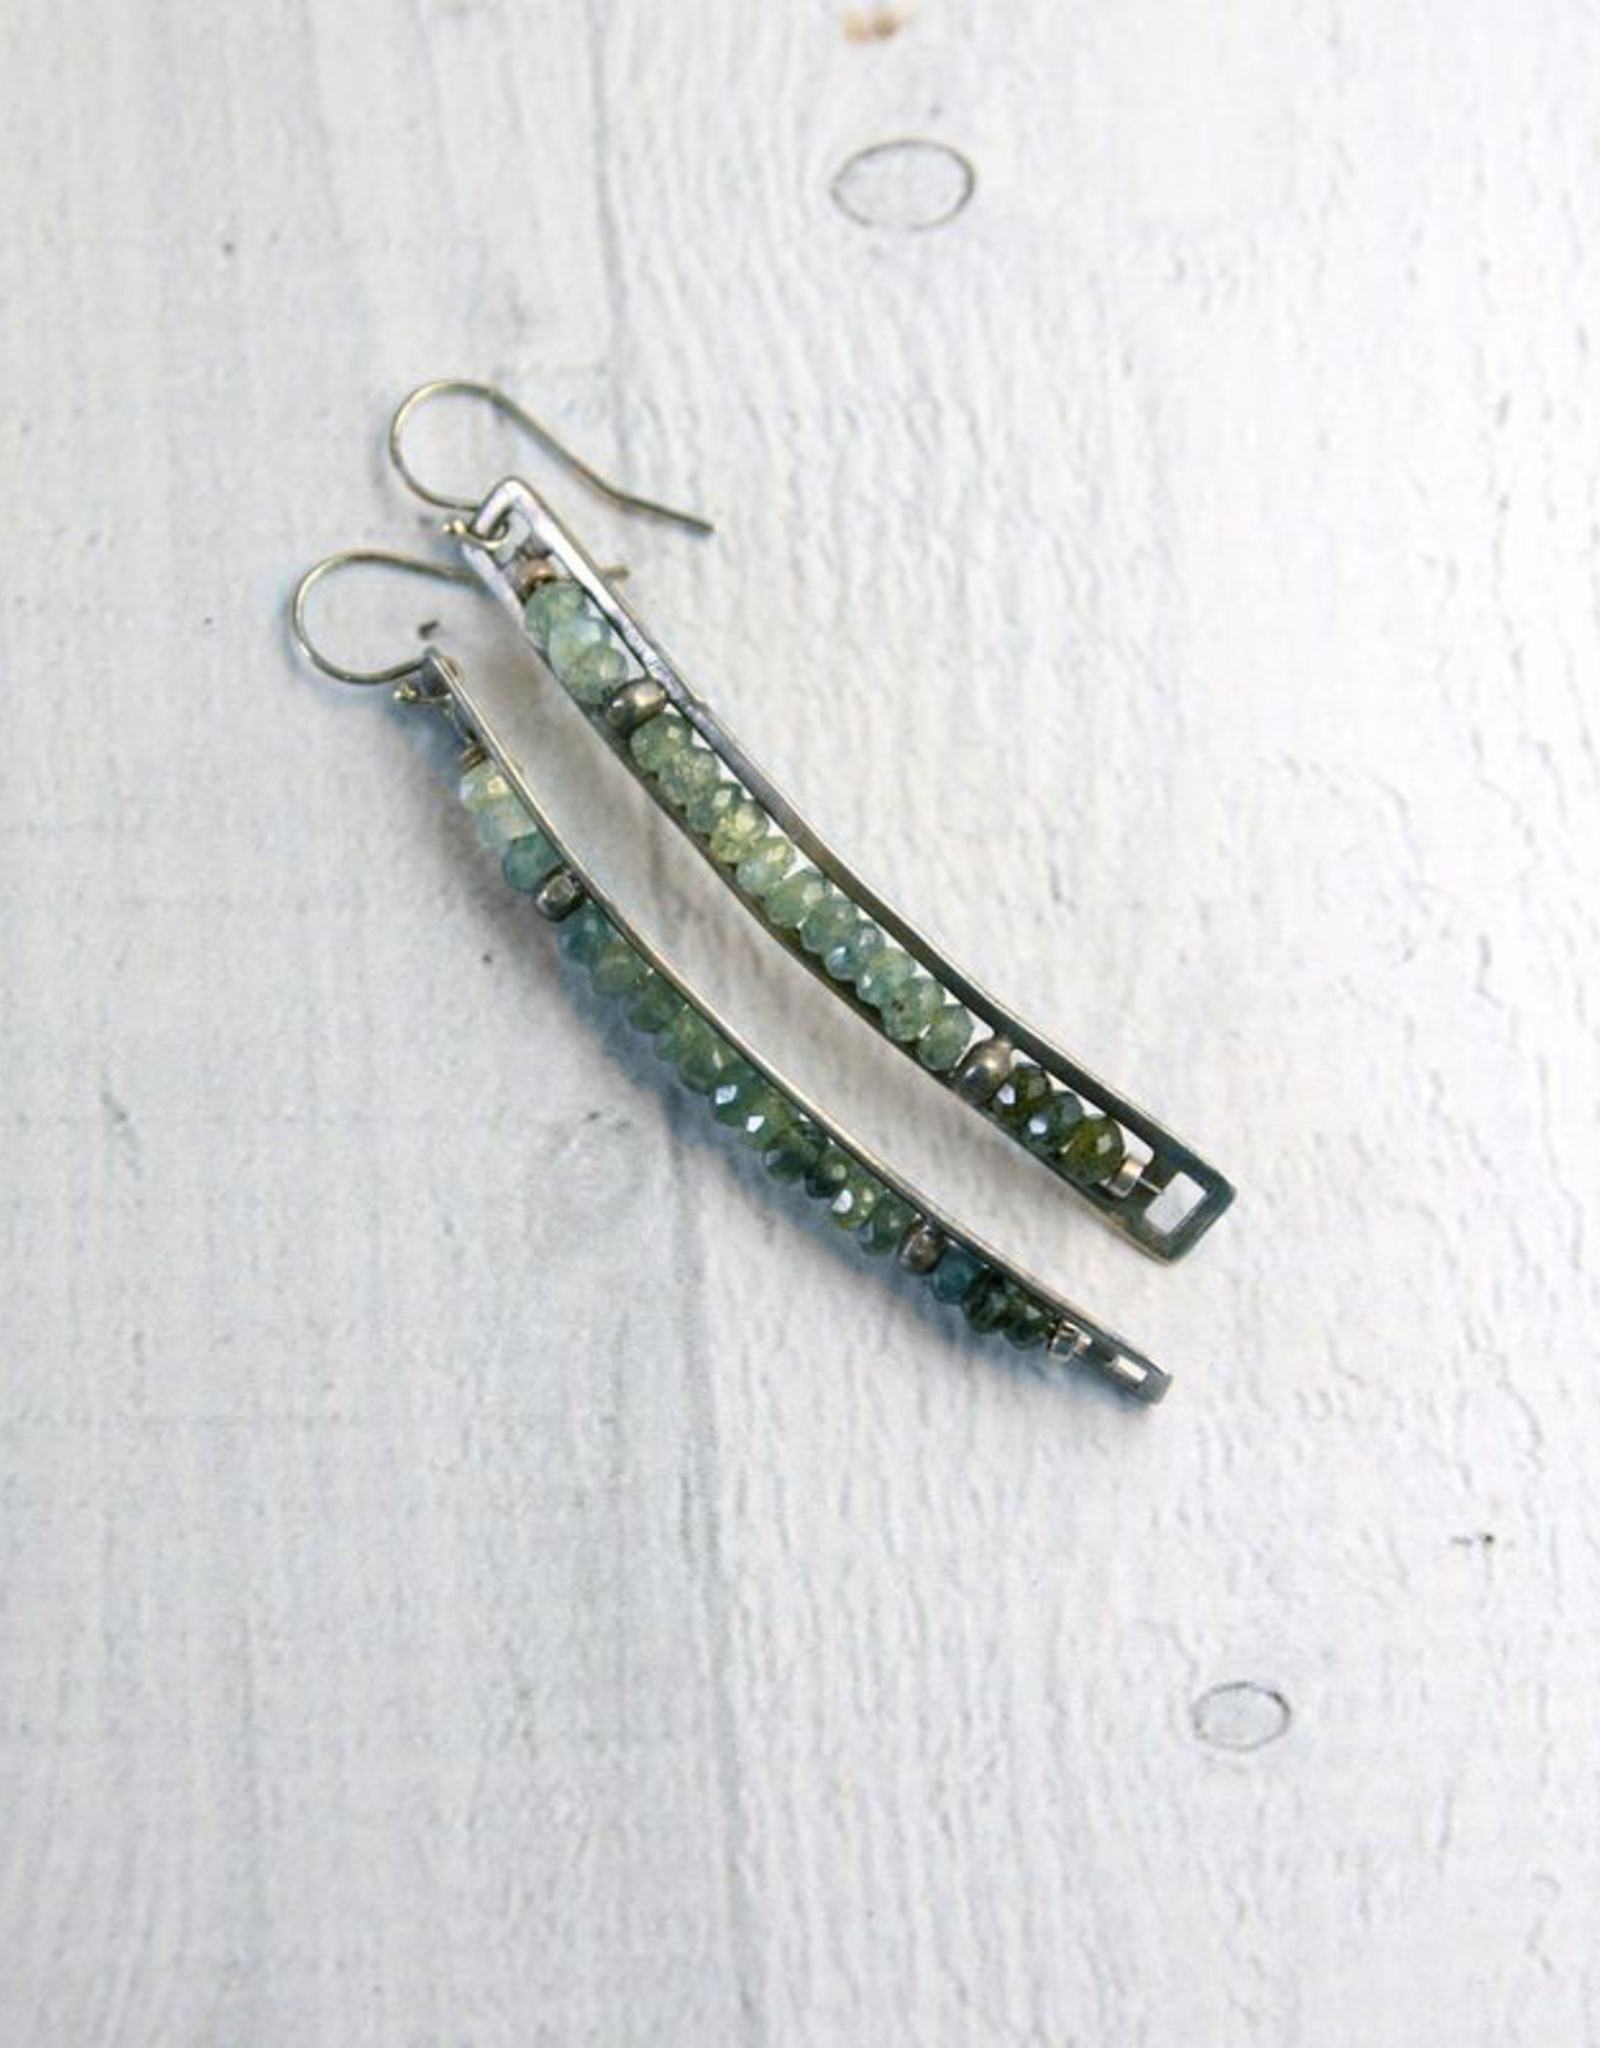 Handmade Matte Sterling Silver Long Vertical Frame Earrings with Aquamarine Row by Julia Britell Designs